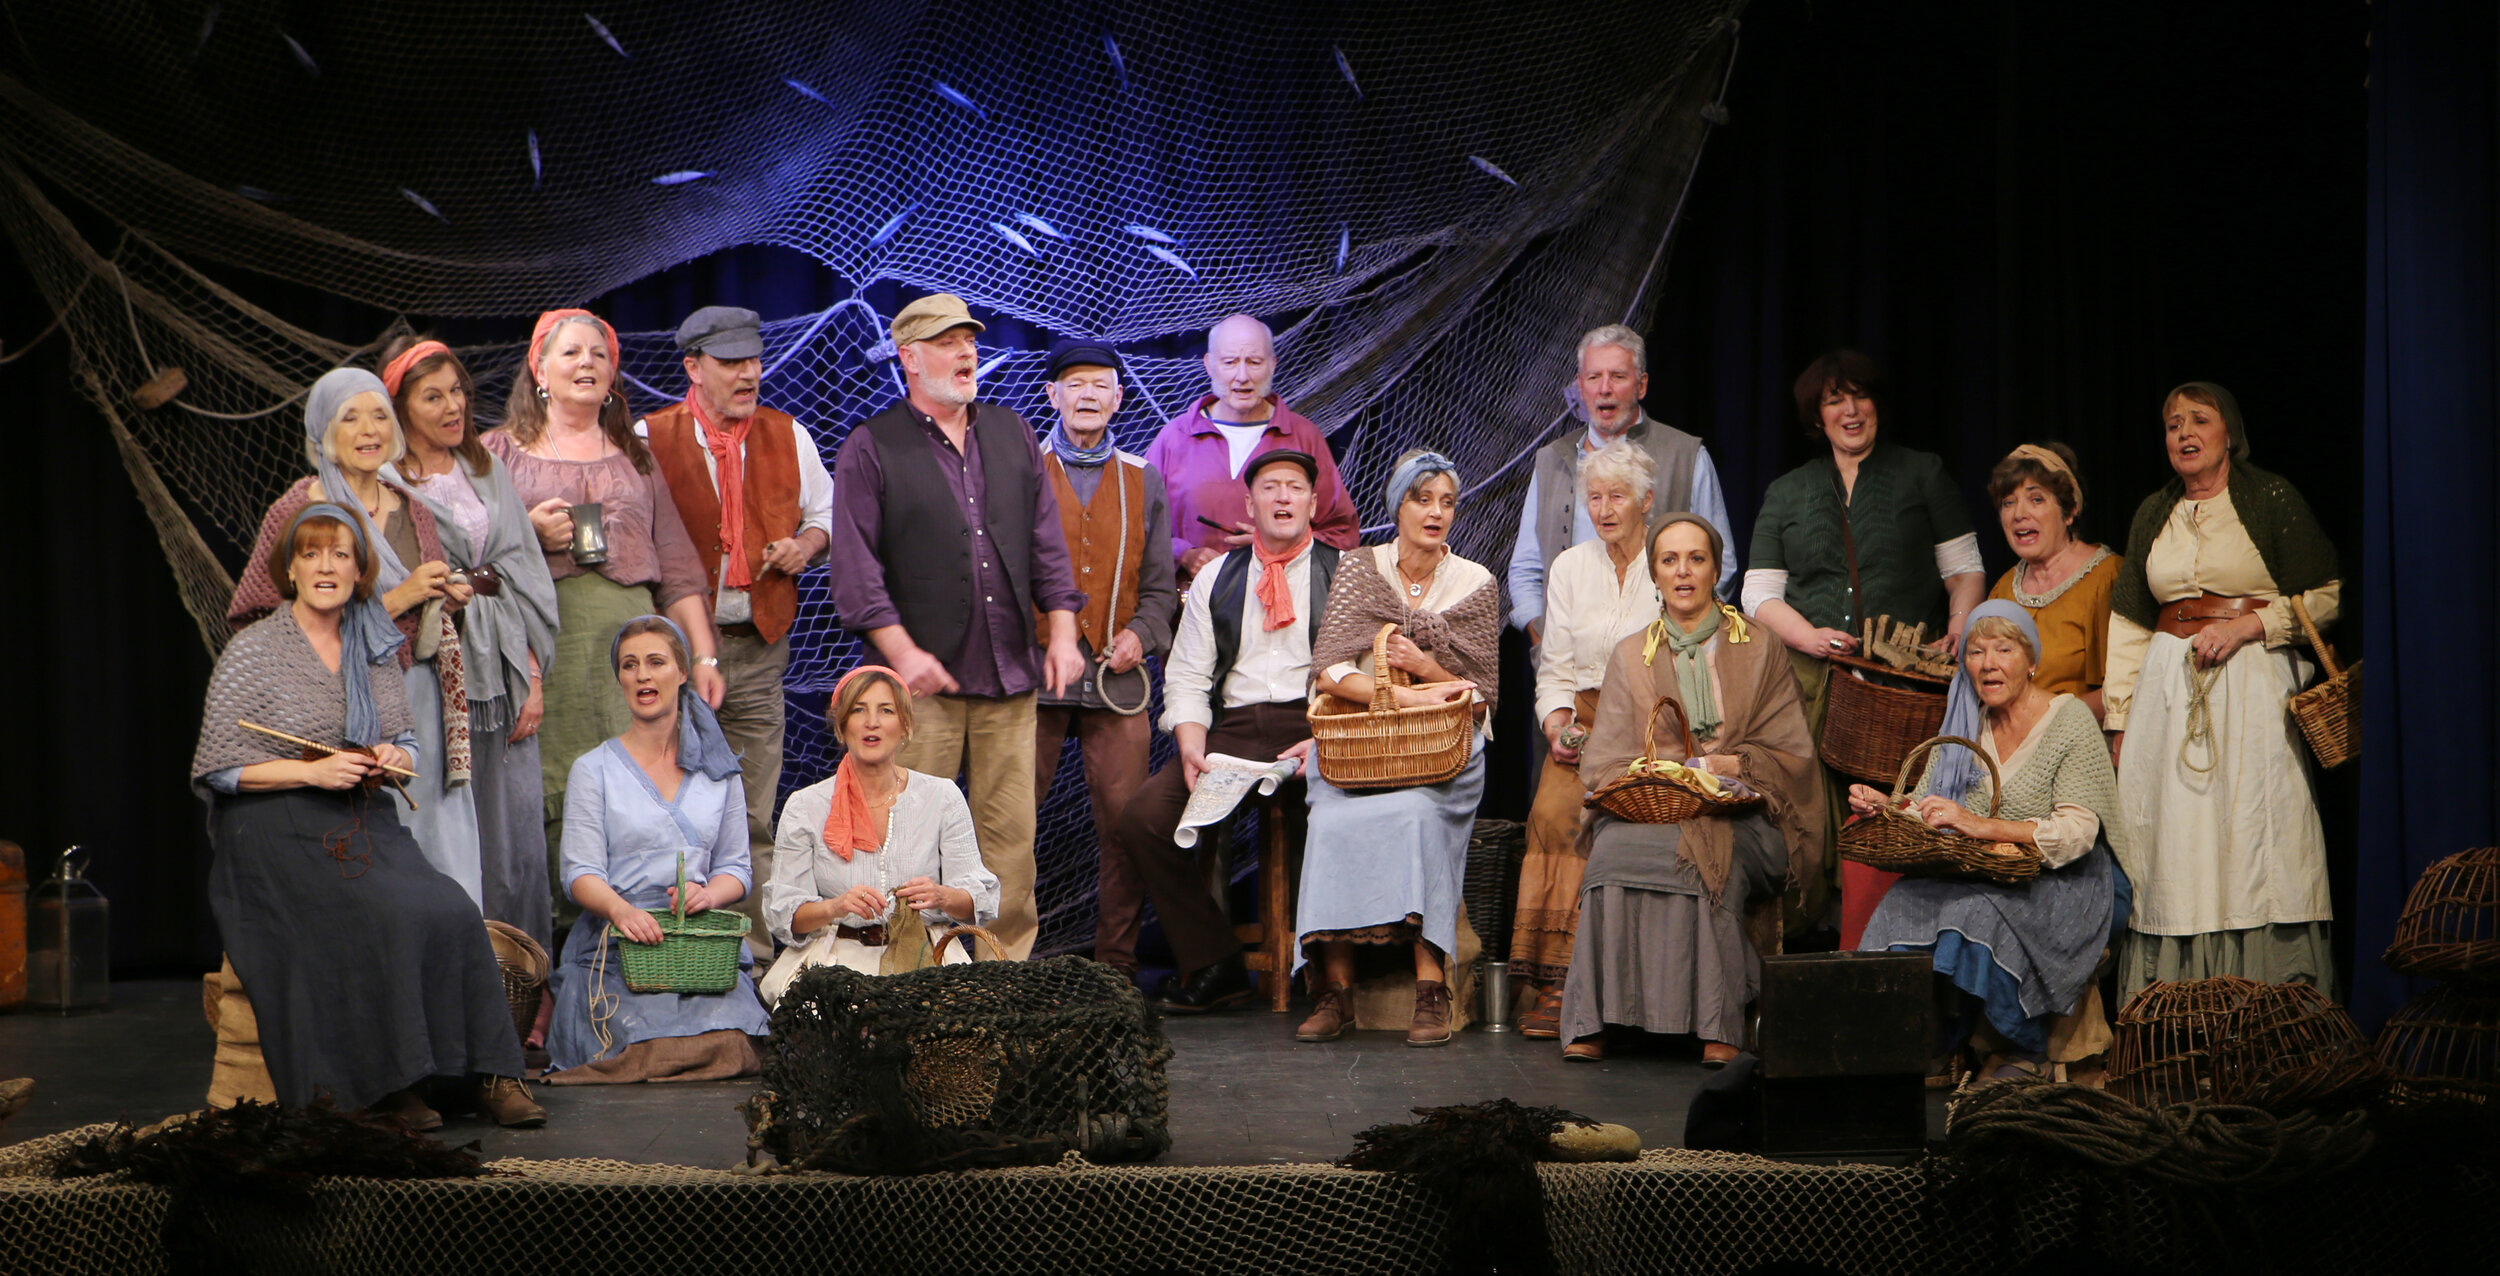 Opening our show 'The Pull of the Tide' at the Marine Theatre Lyme and Royal Manor Theatre Portland 2019